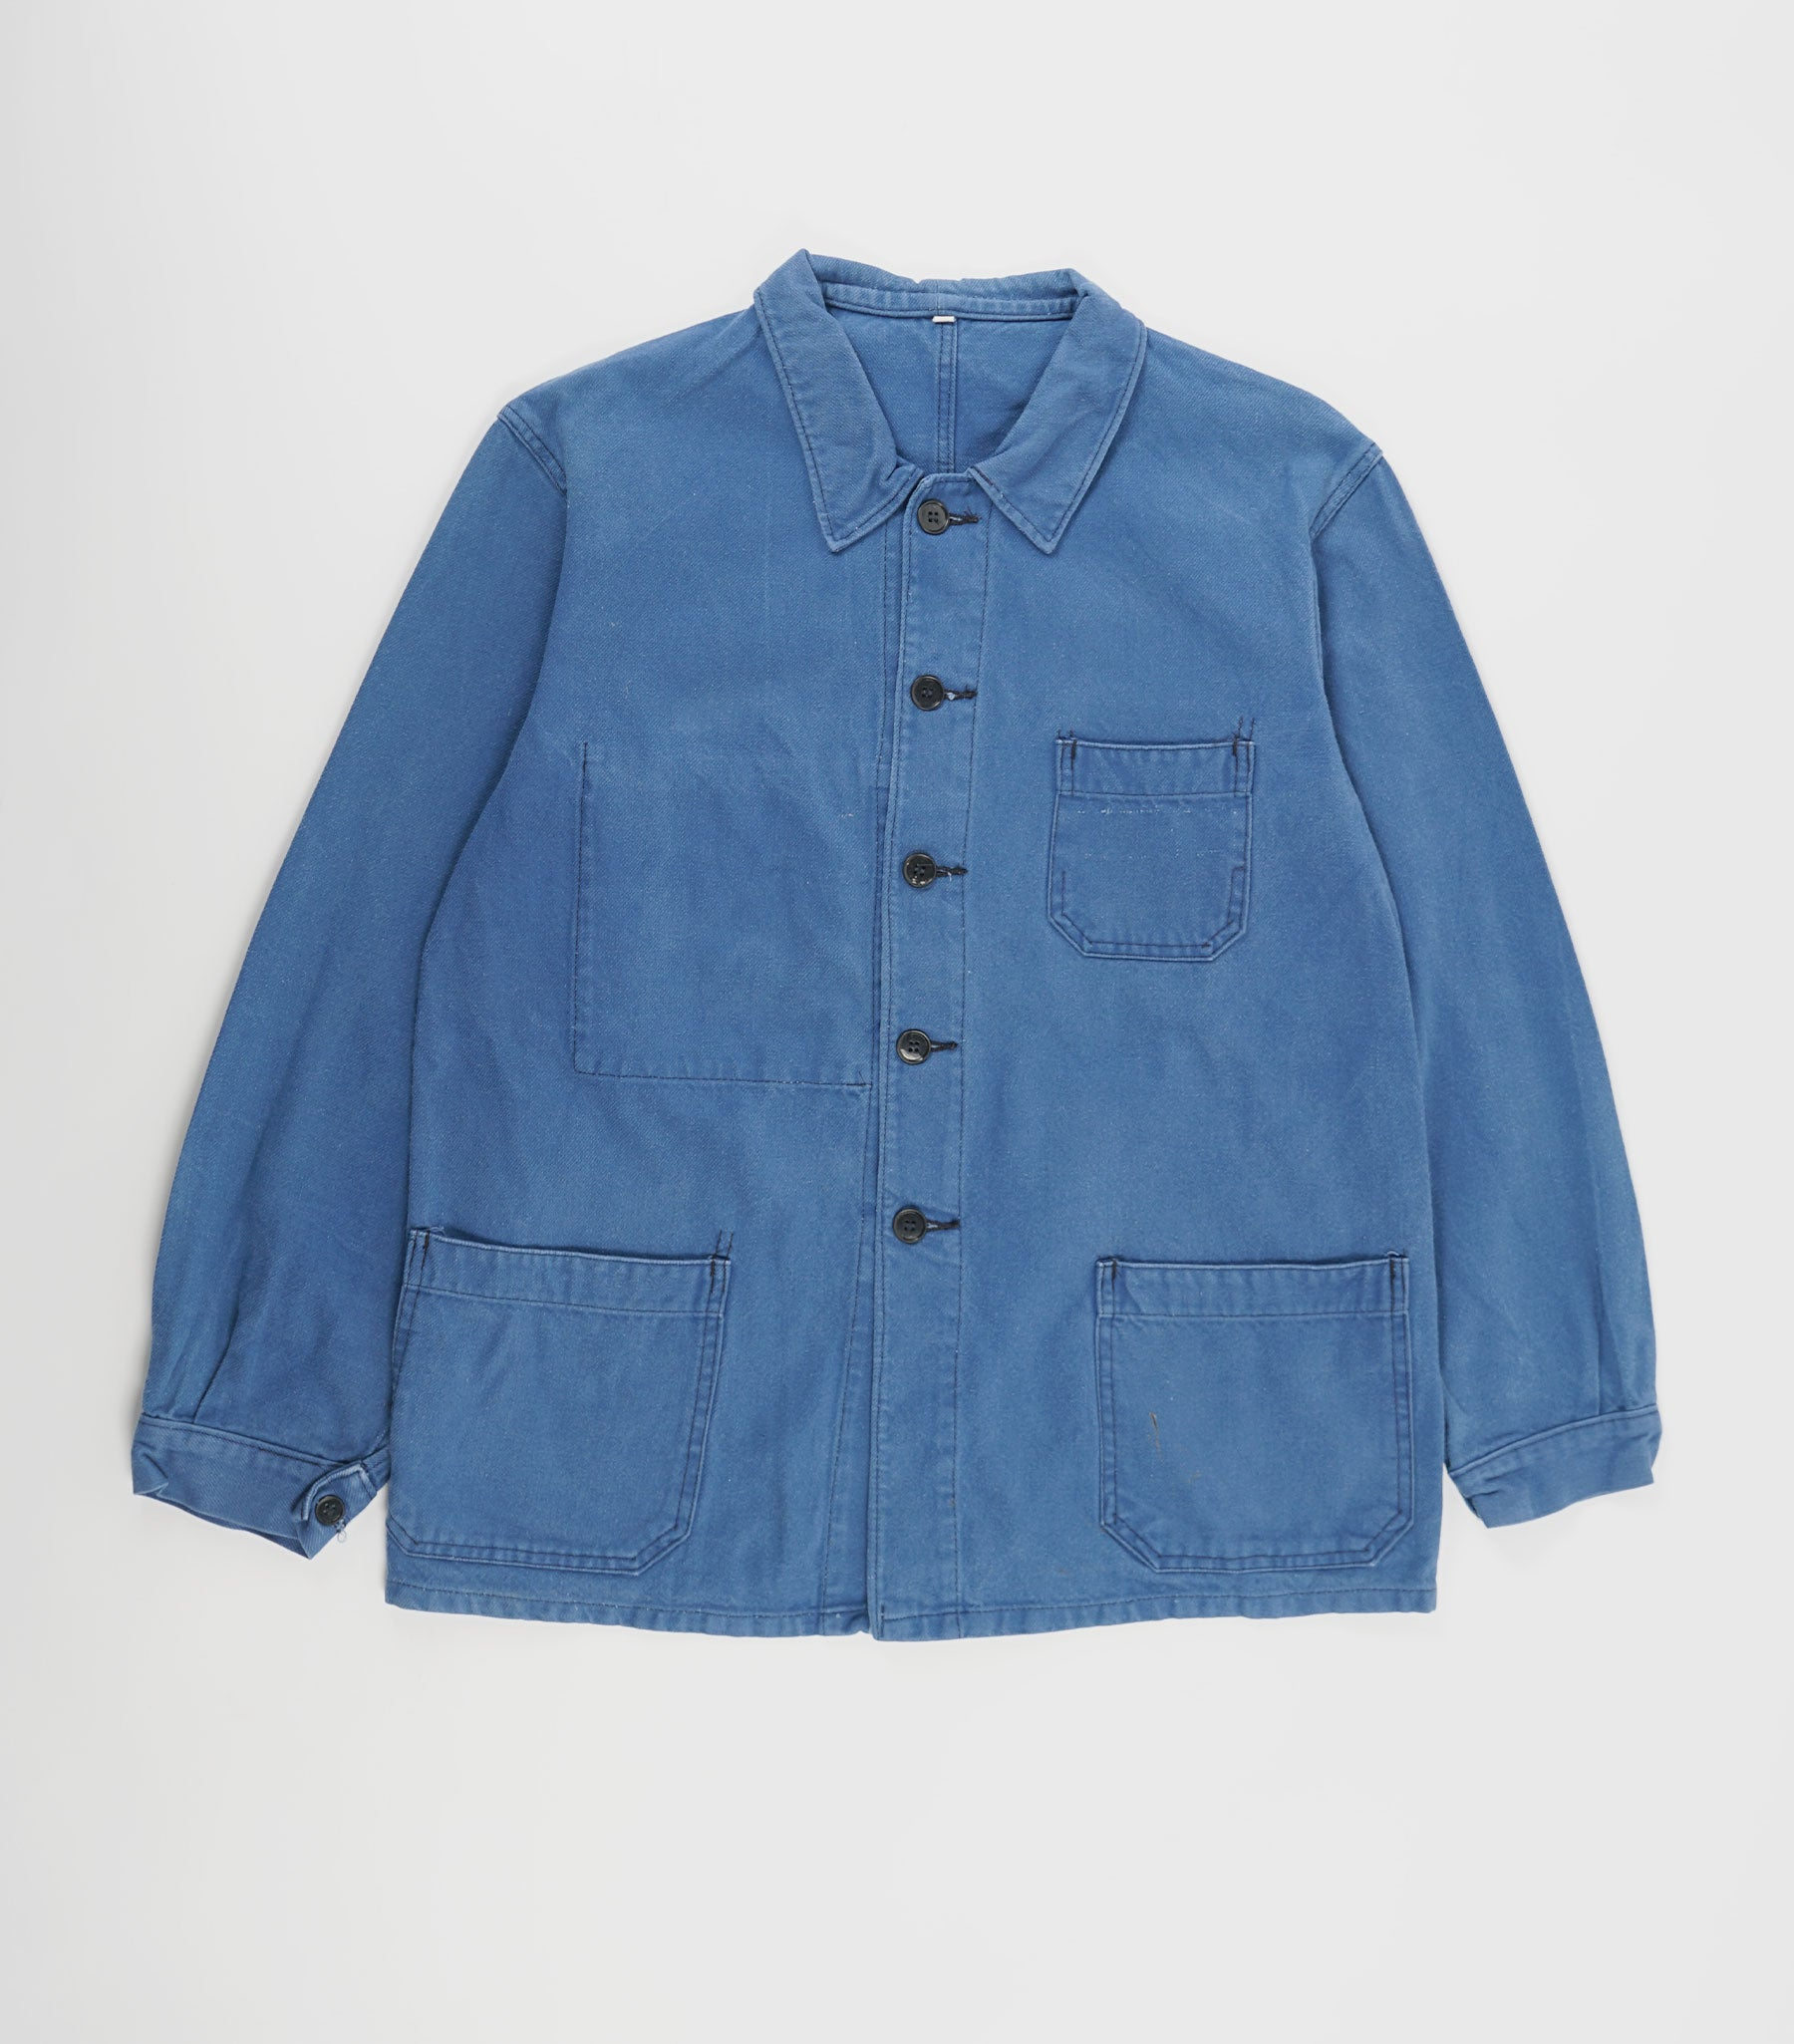 French Work Jacket